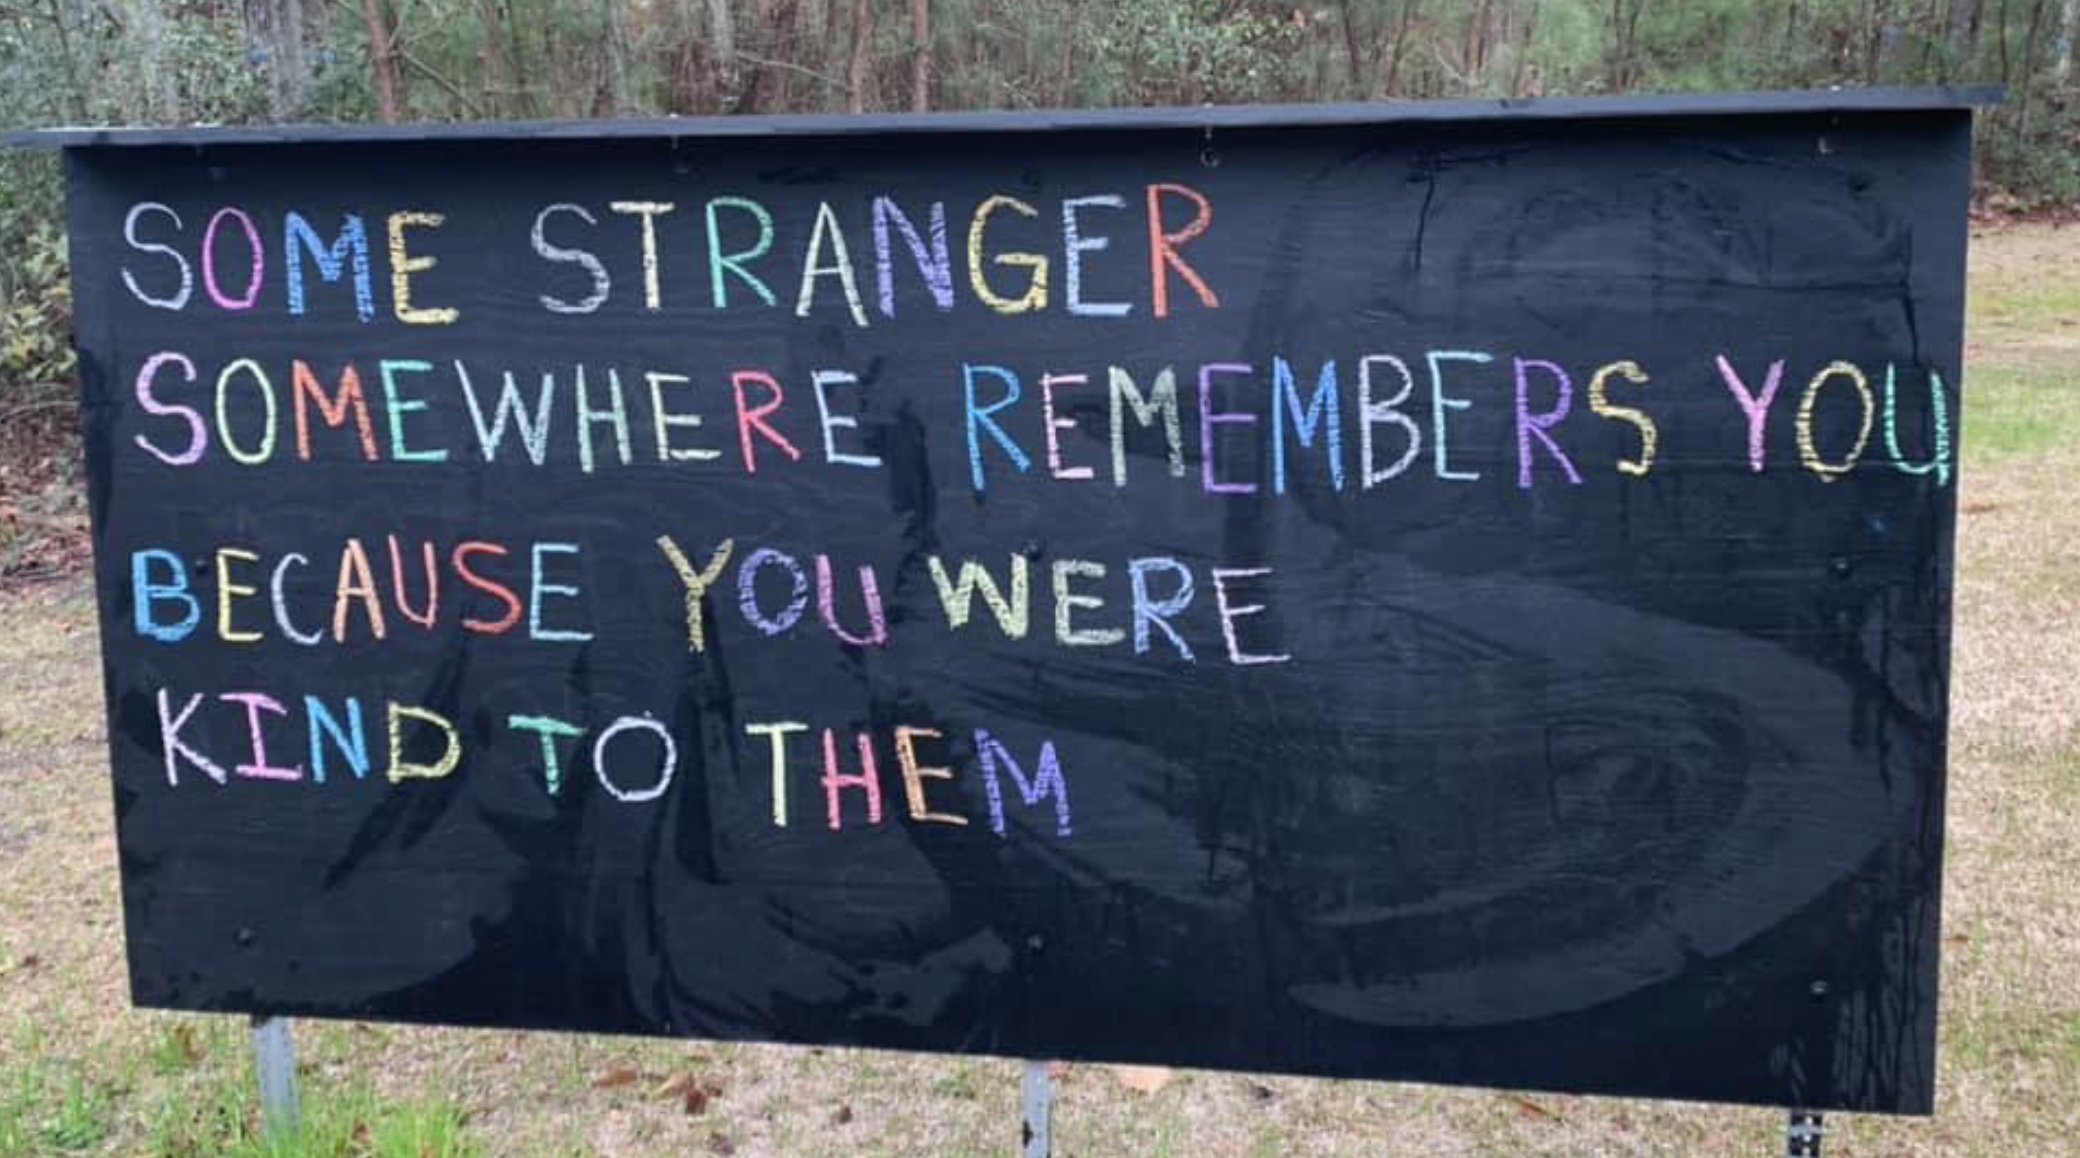 """""""Some stranger somewhere remembers you because you were kind to them"""" written on a sign with chalk"""